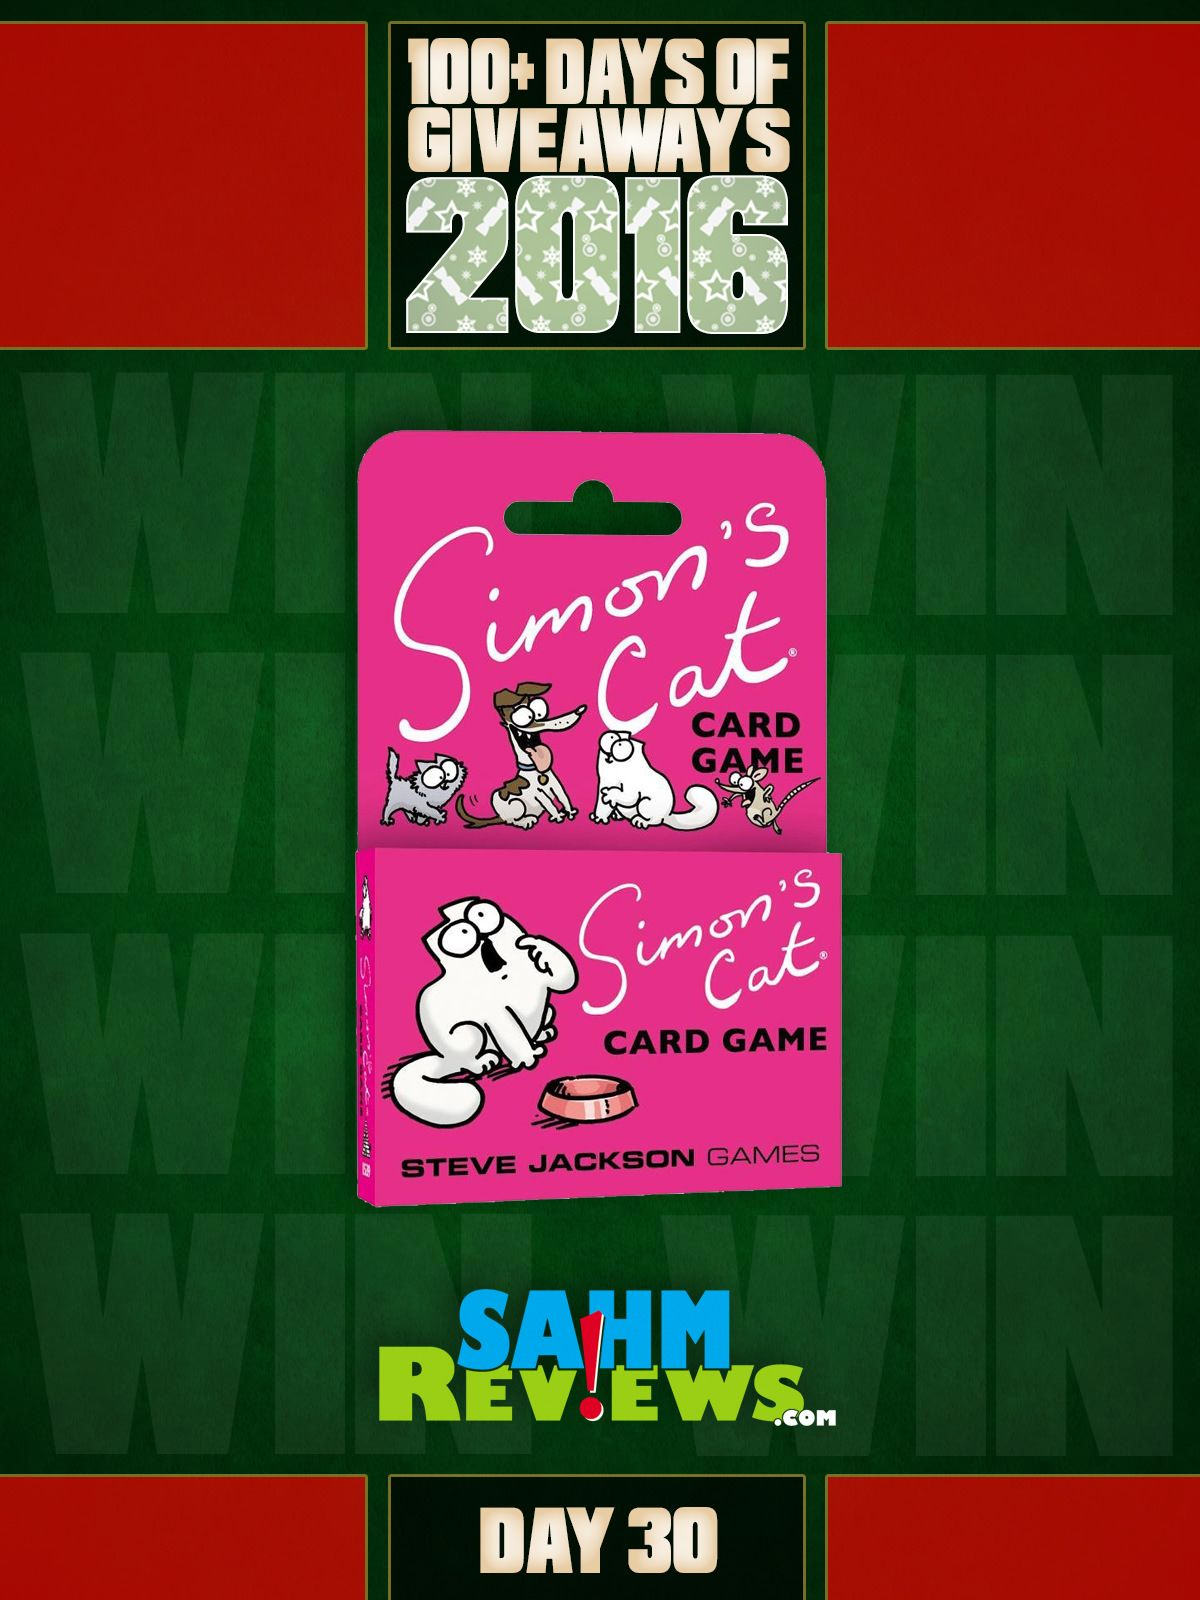 Mega Giveaway Day 30 Simon's Cat Game Card games, Game